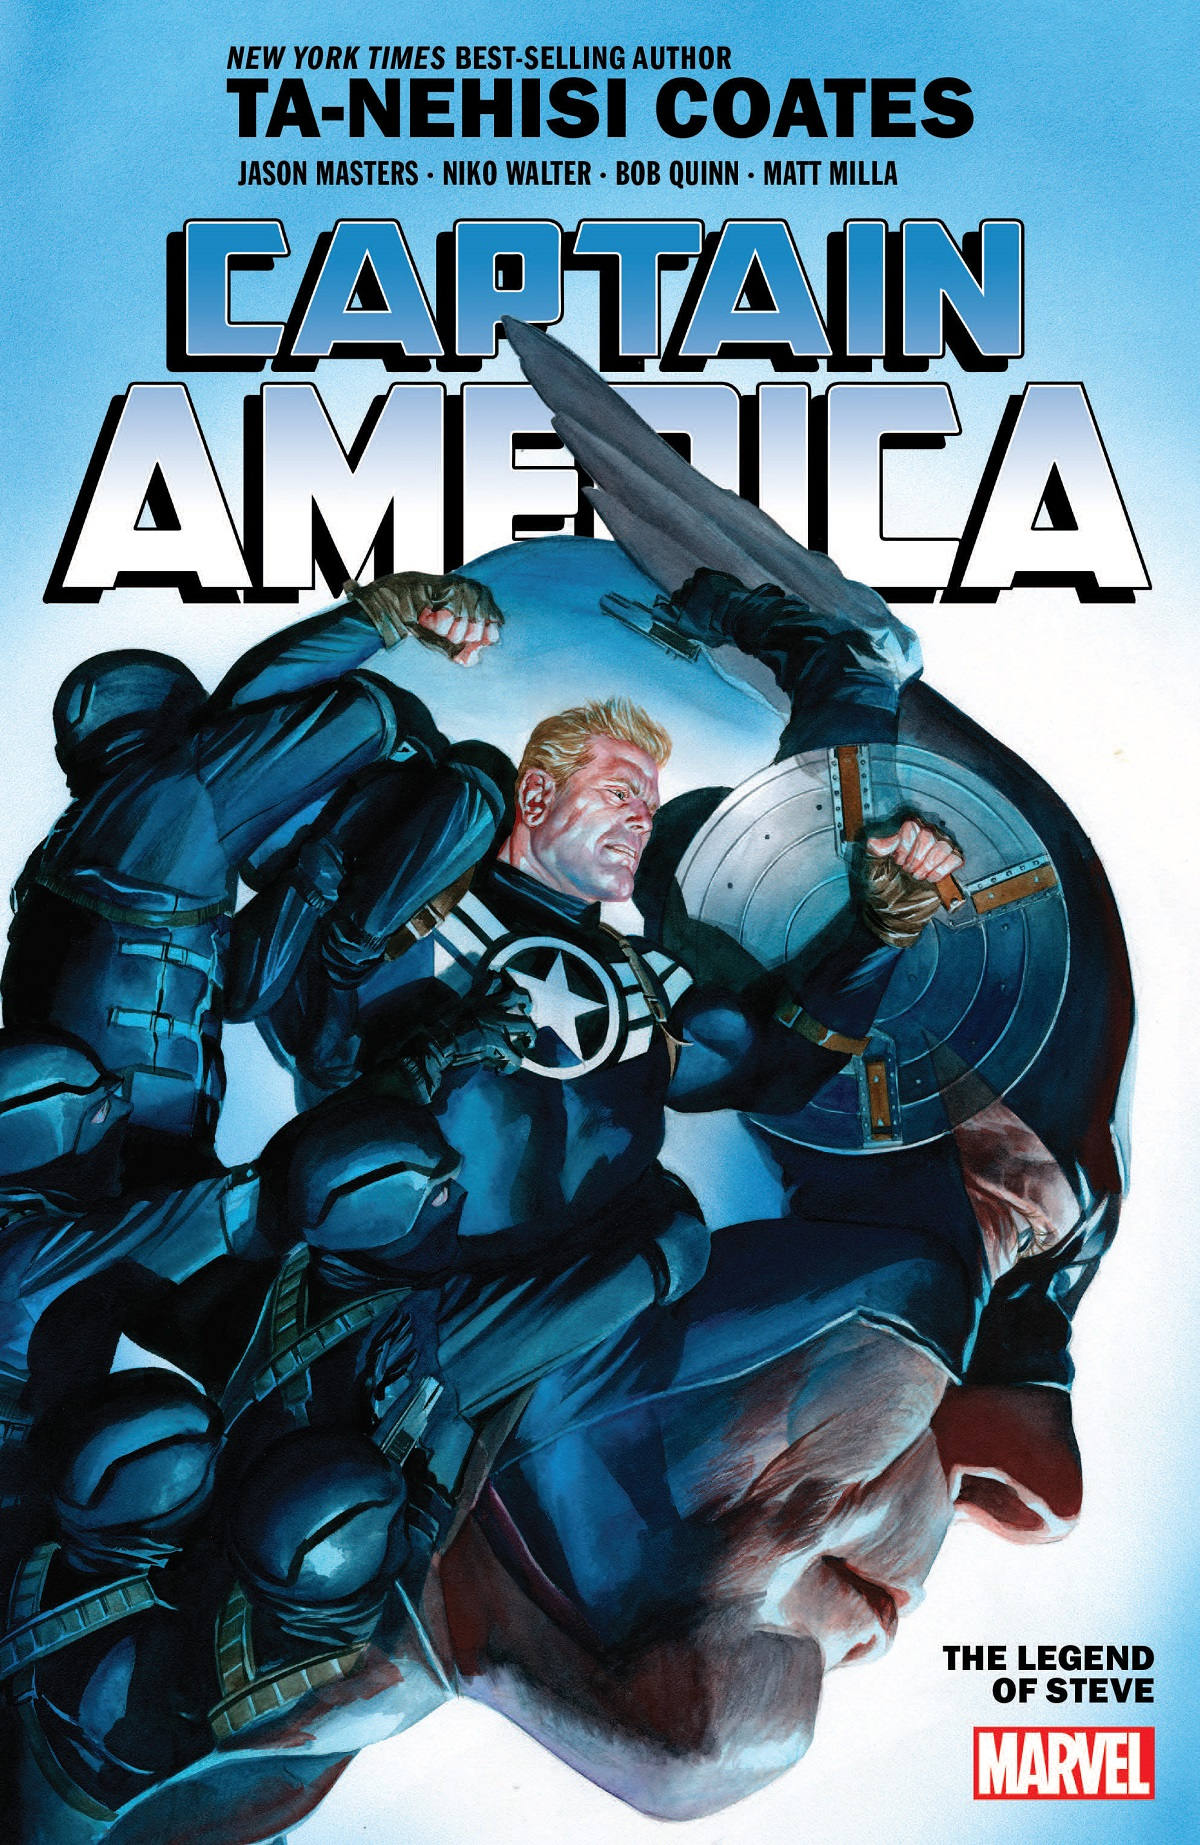 CAPTAIN AMERICA BY TA-NEHISI COATES VOL. 3: THE LEGEND OF STEVE TPB (Trade Paperback)